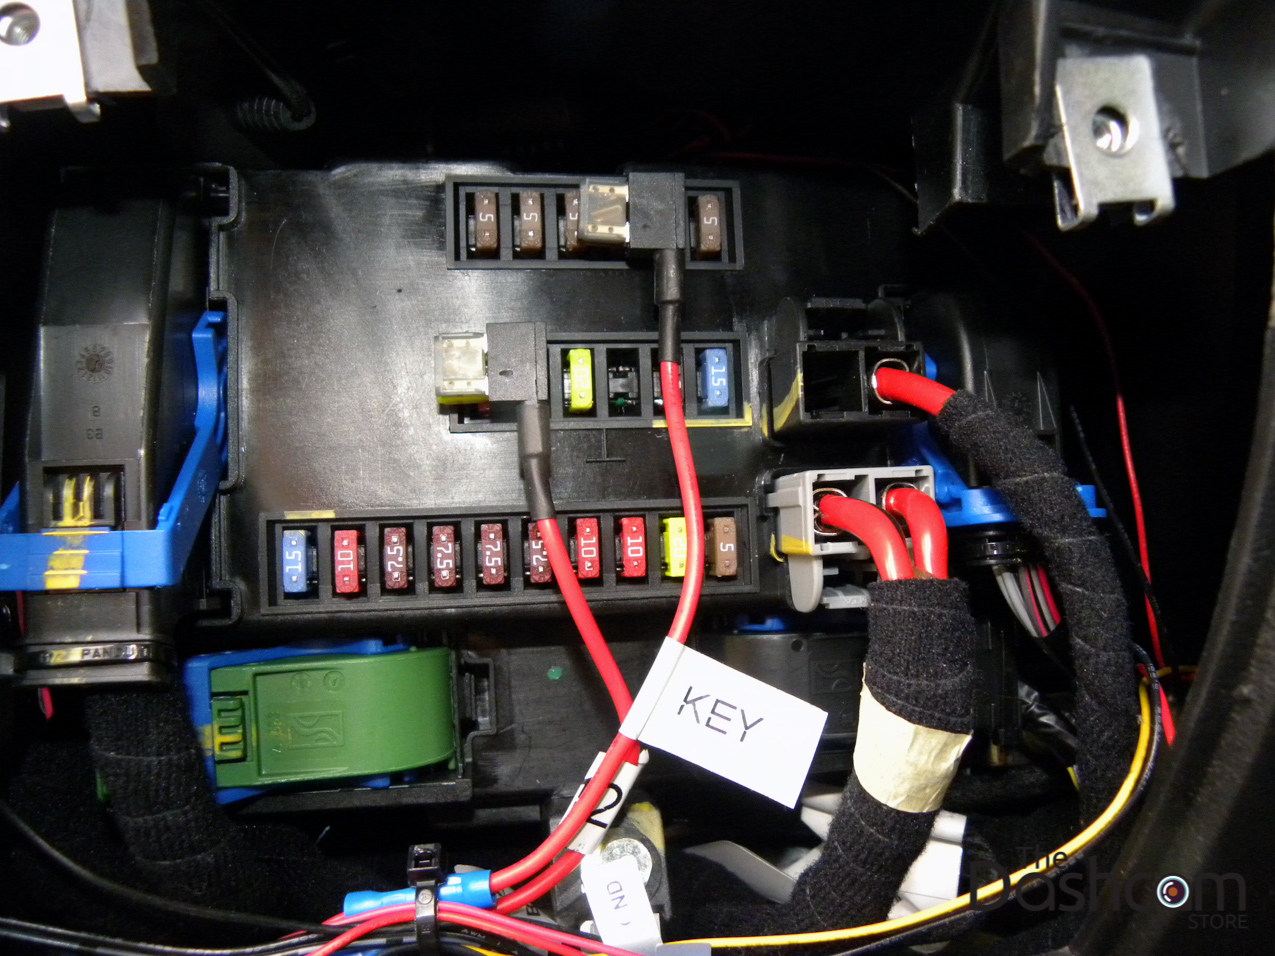 Thedashcamstore Com Blackvue Dr Gw Ch Power Magic Pro Ram Promaster Install on Dodge Ram 2500 Wiring Diagram